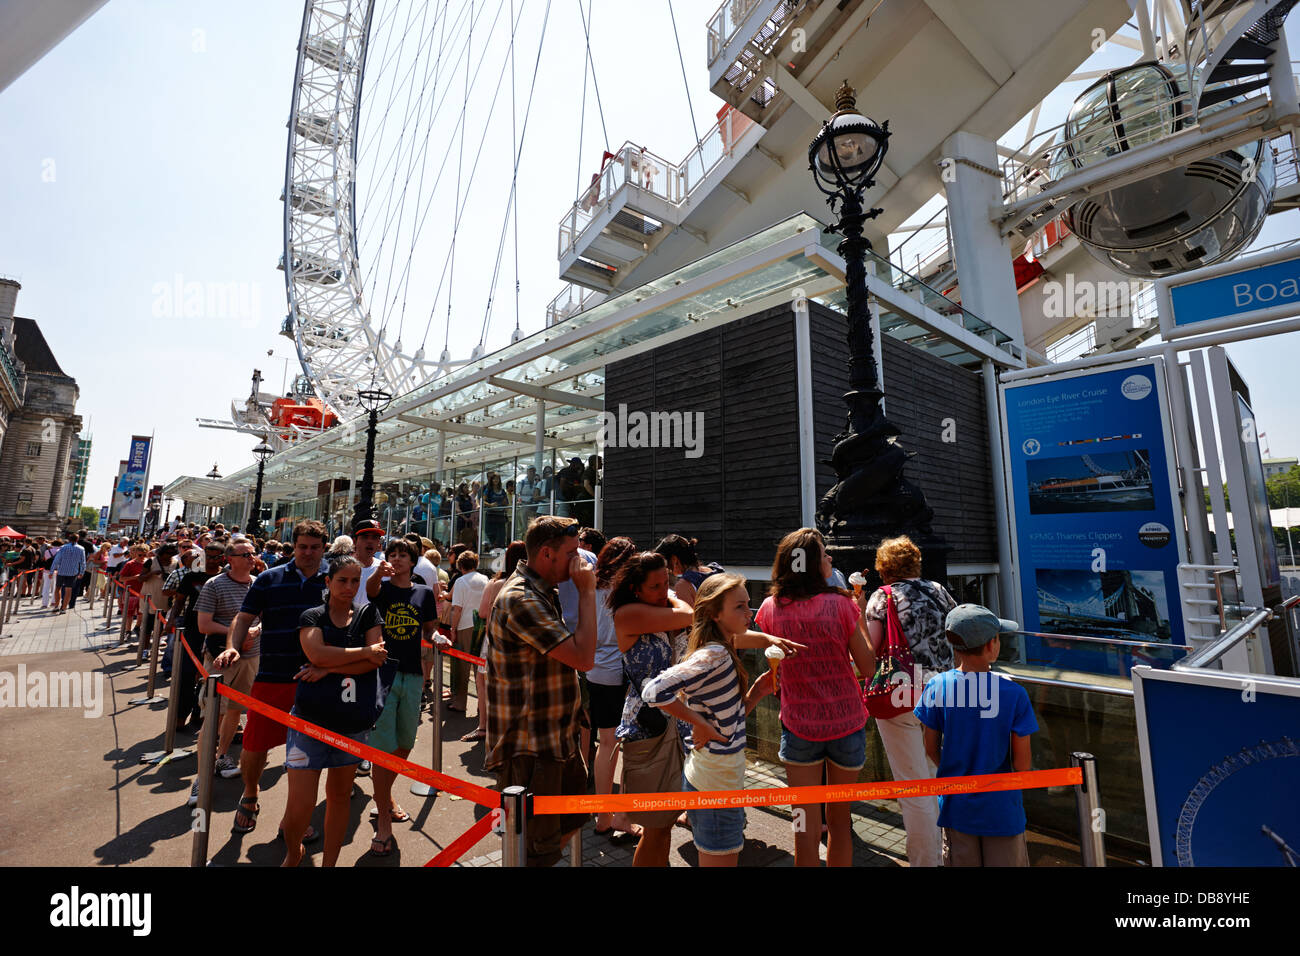 tourists queue to get into the london eye tourist attraction London England UK Stock Photo